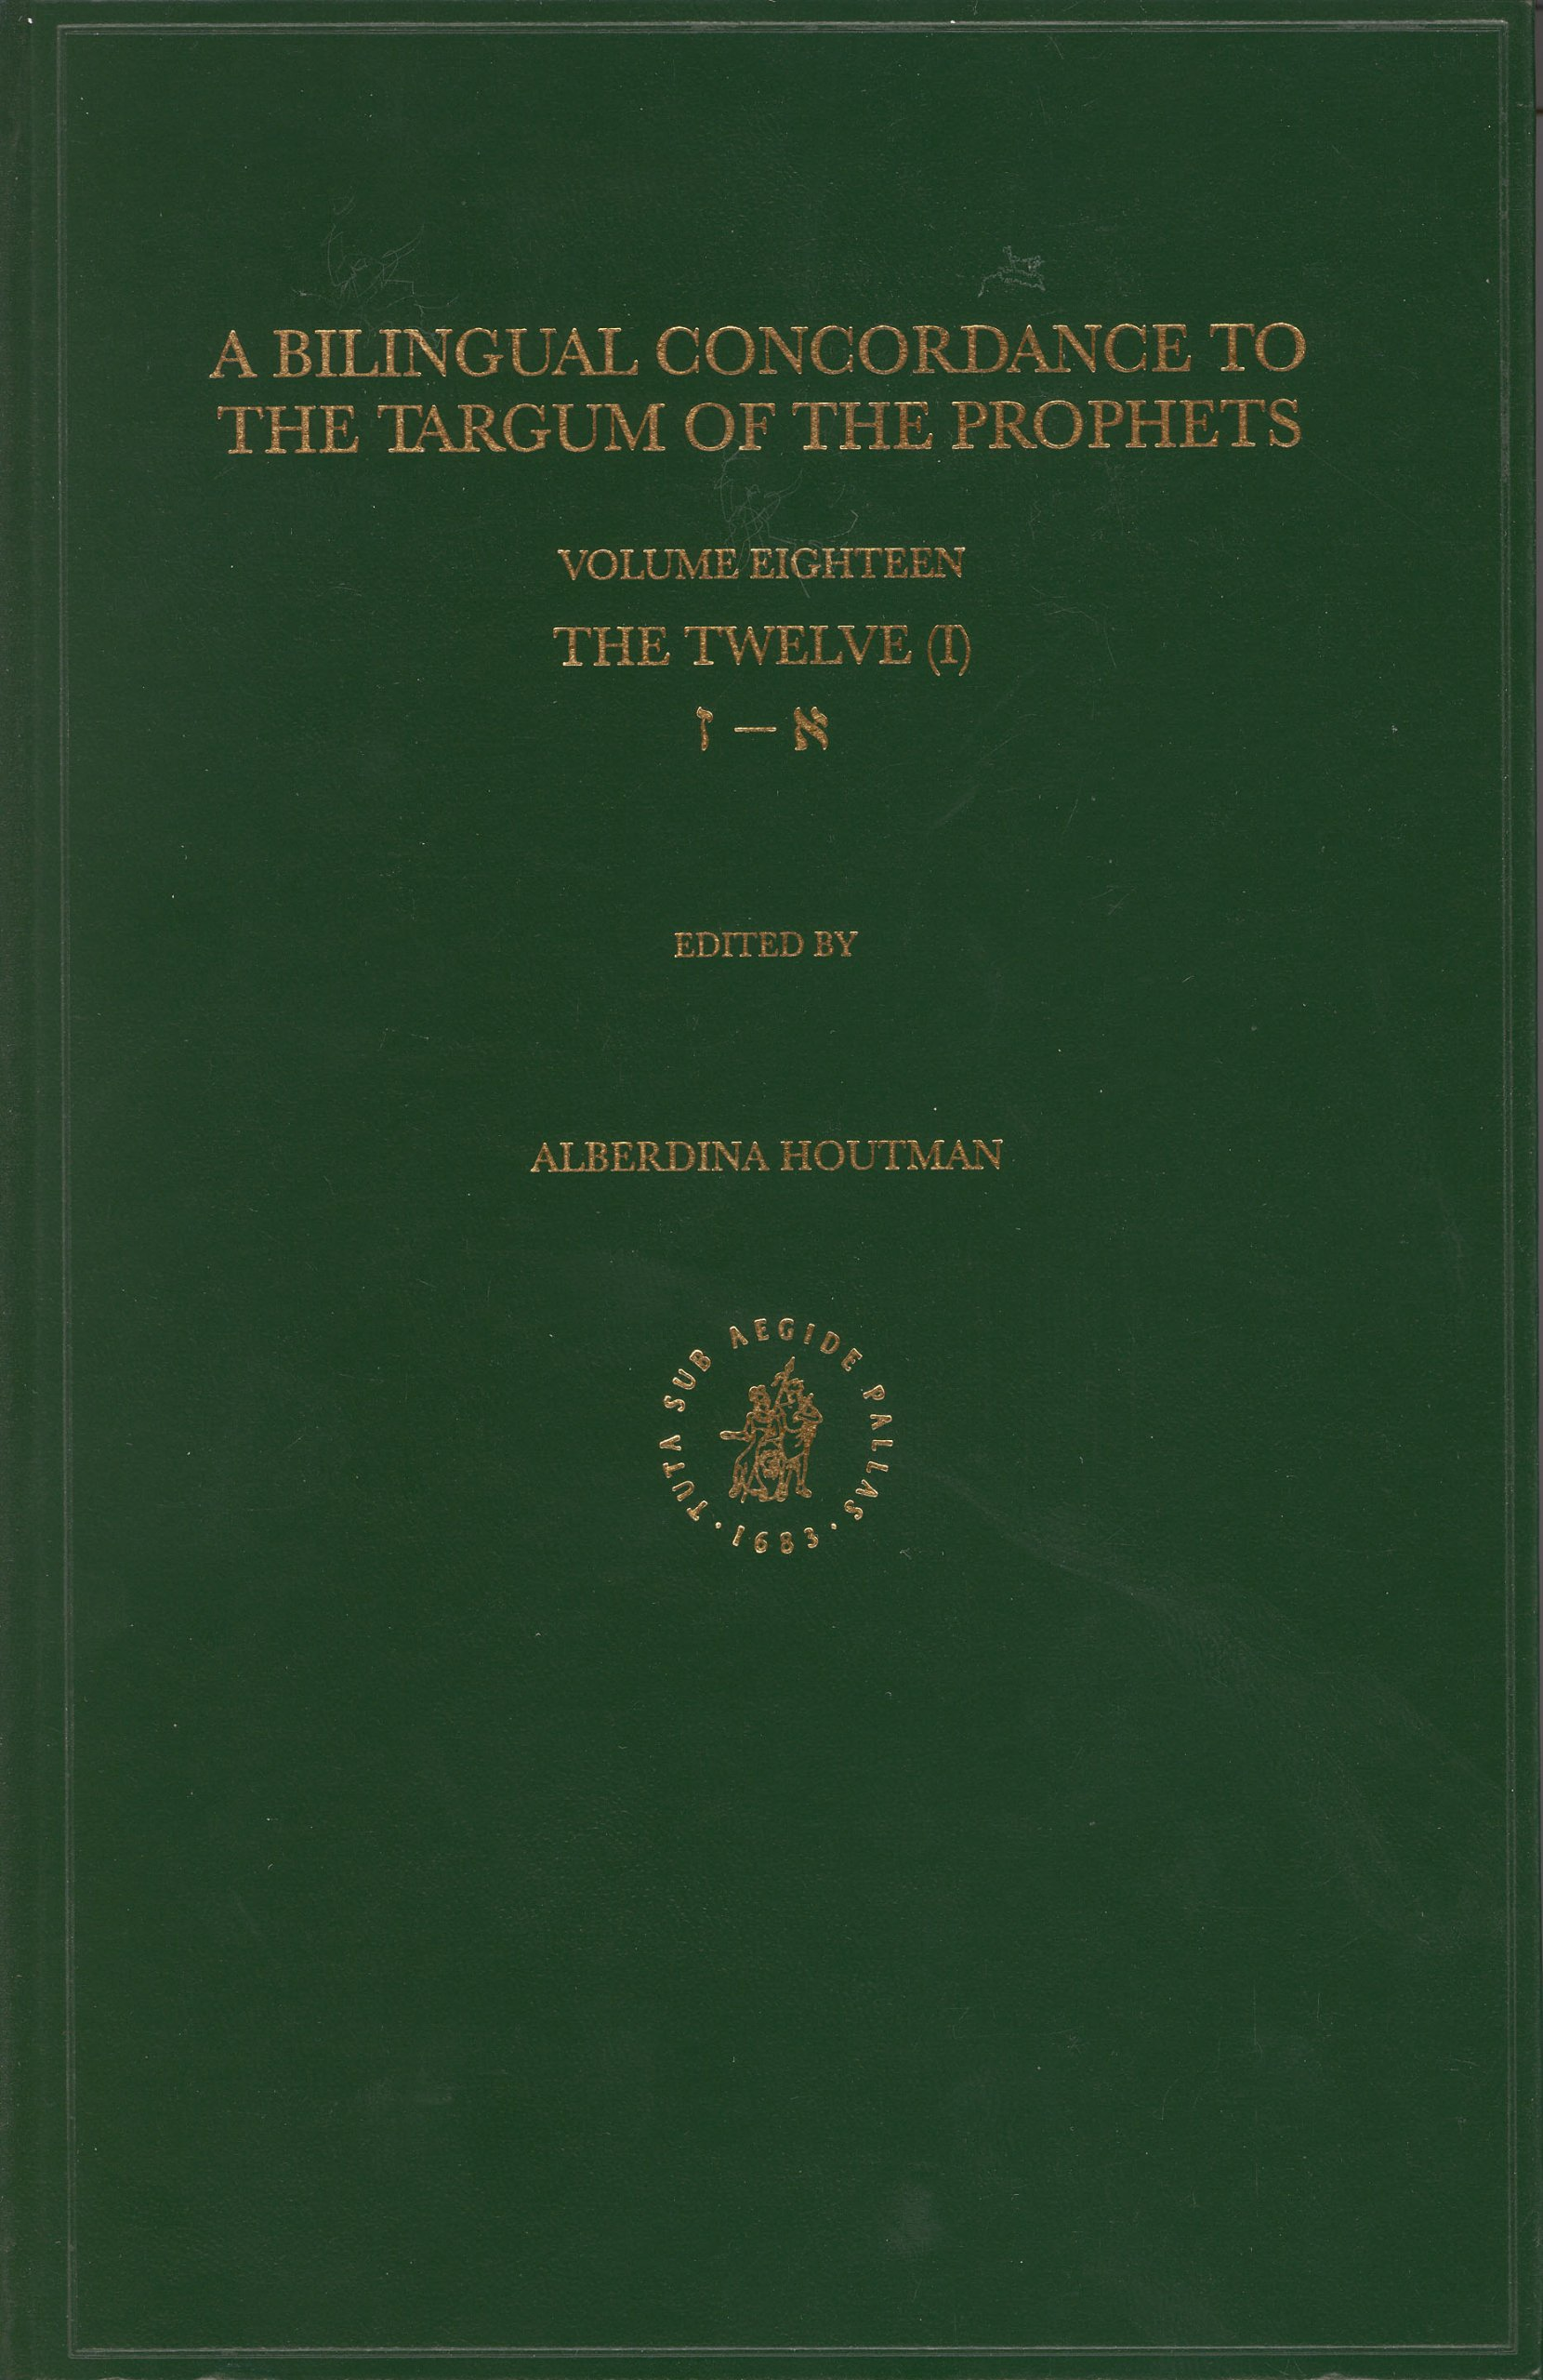 Bilingual Concordance to the Targum of the Prophets, Volume 18 Twelve (Aleph - Zayin) (Multilingual Edition)